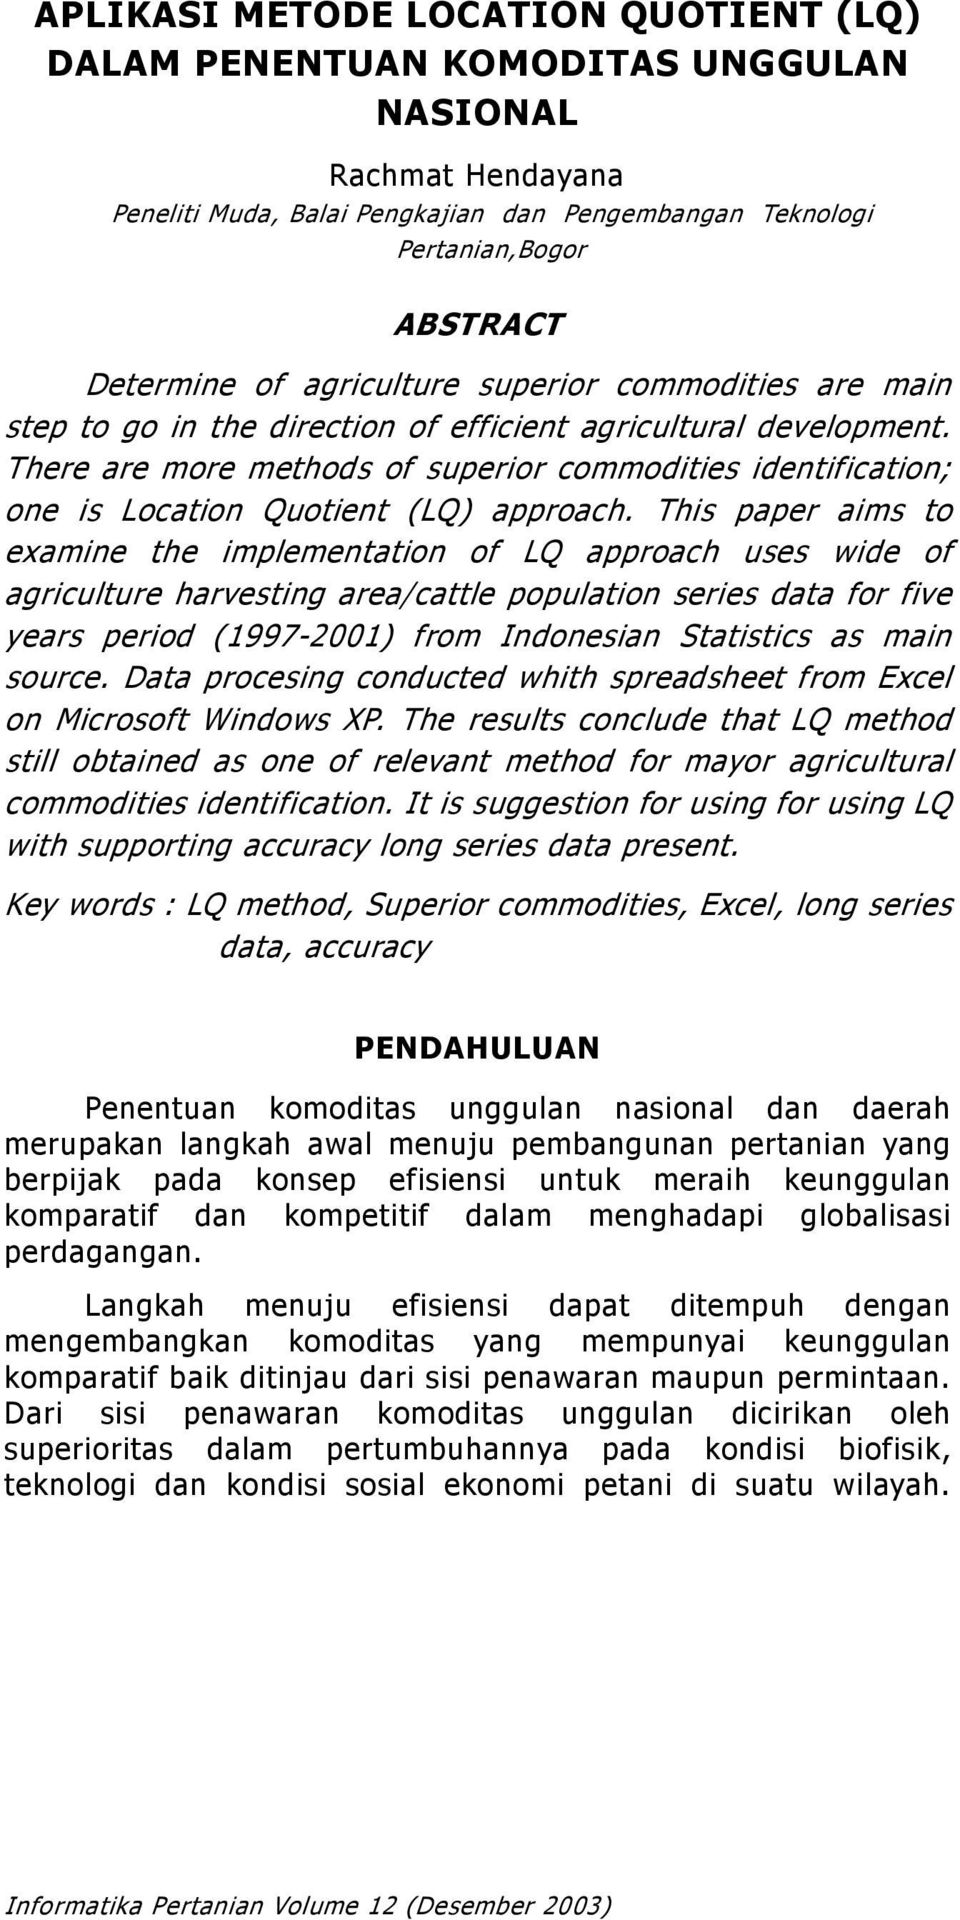 (LQ) approach This paper aims to examine the implementation of LQ approach uses wide of agriculture harvesting area/cattle population series data for five years period (-) from Indonesian Statistics